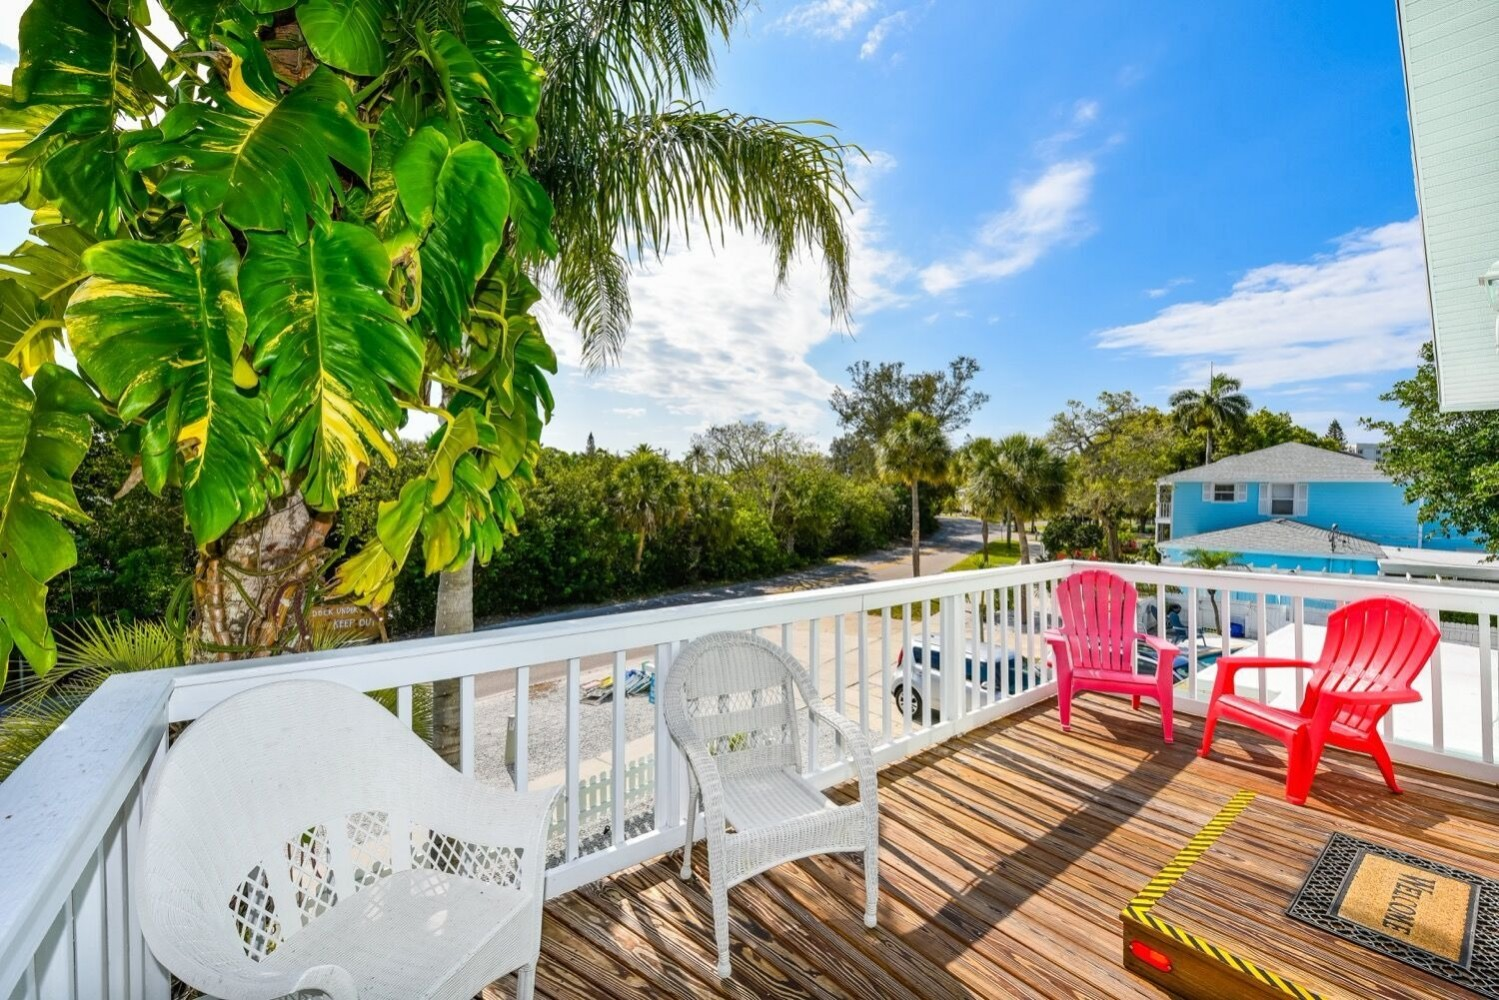 Island - Siesta Key Vacation Rentals